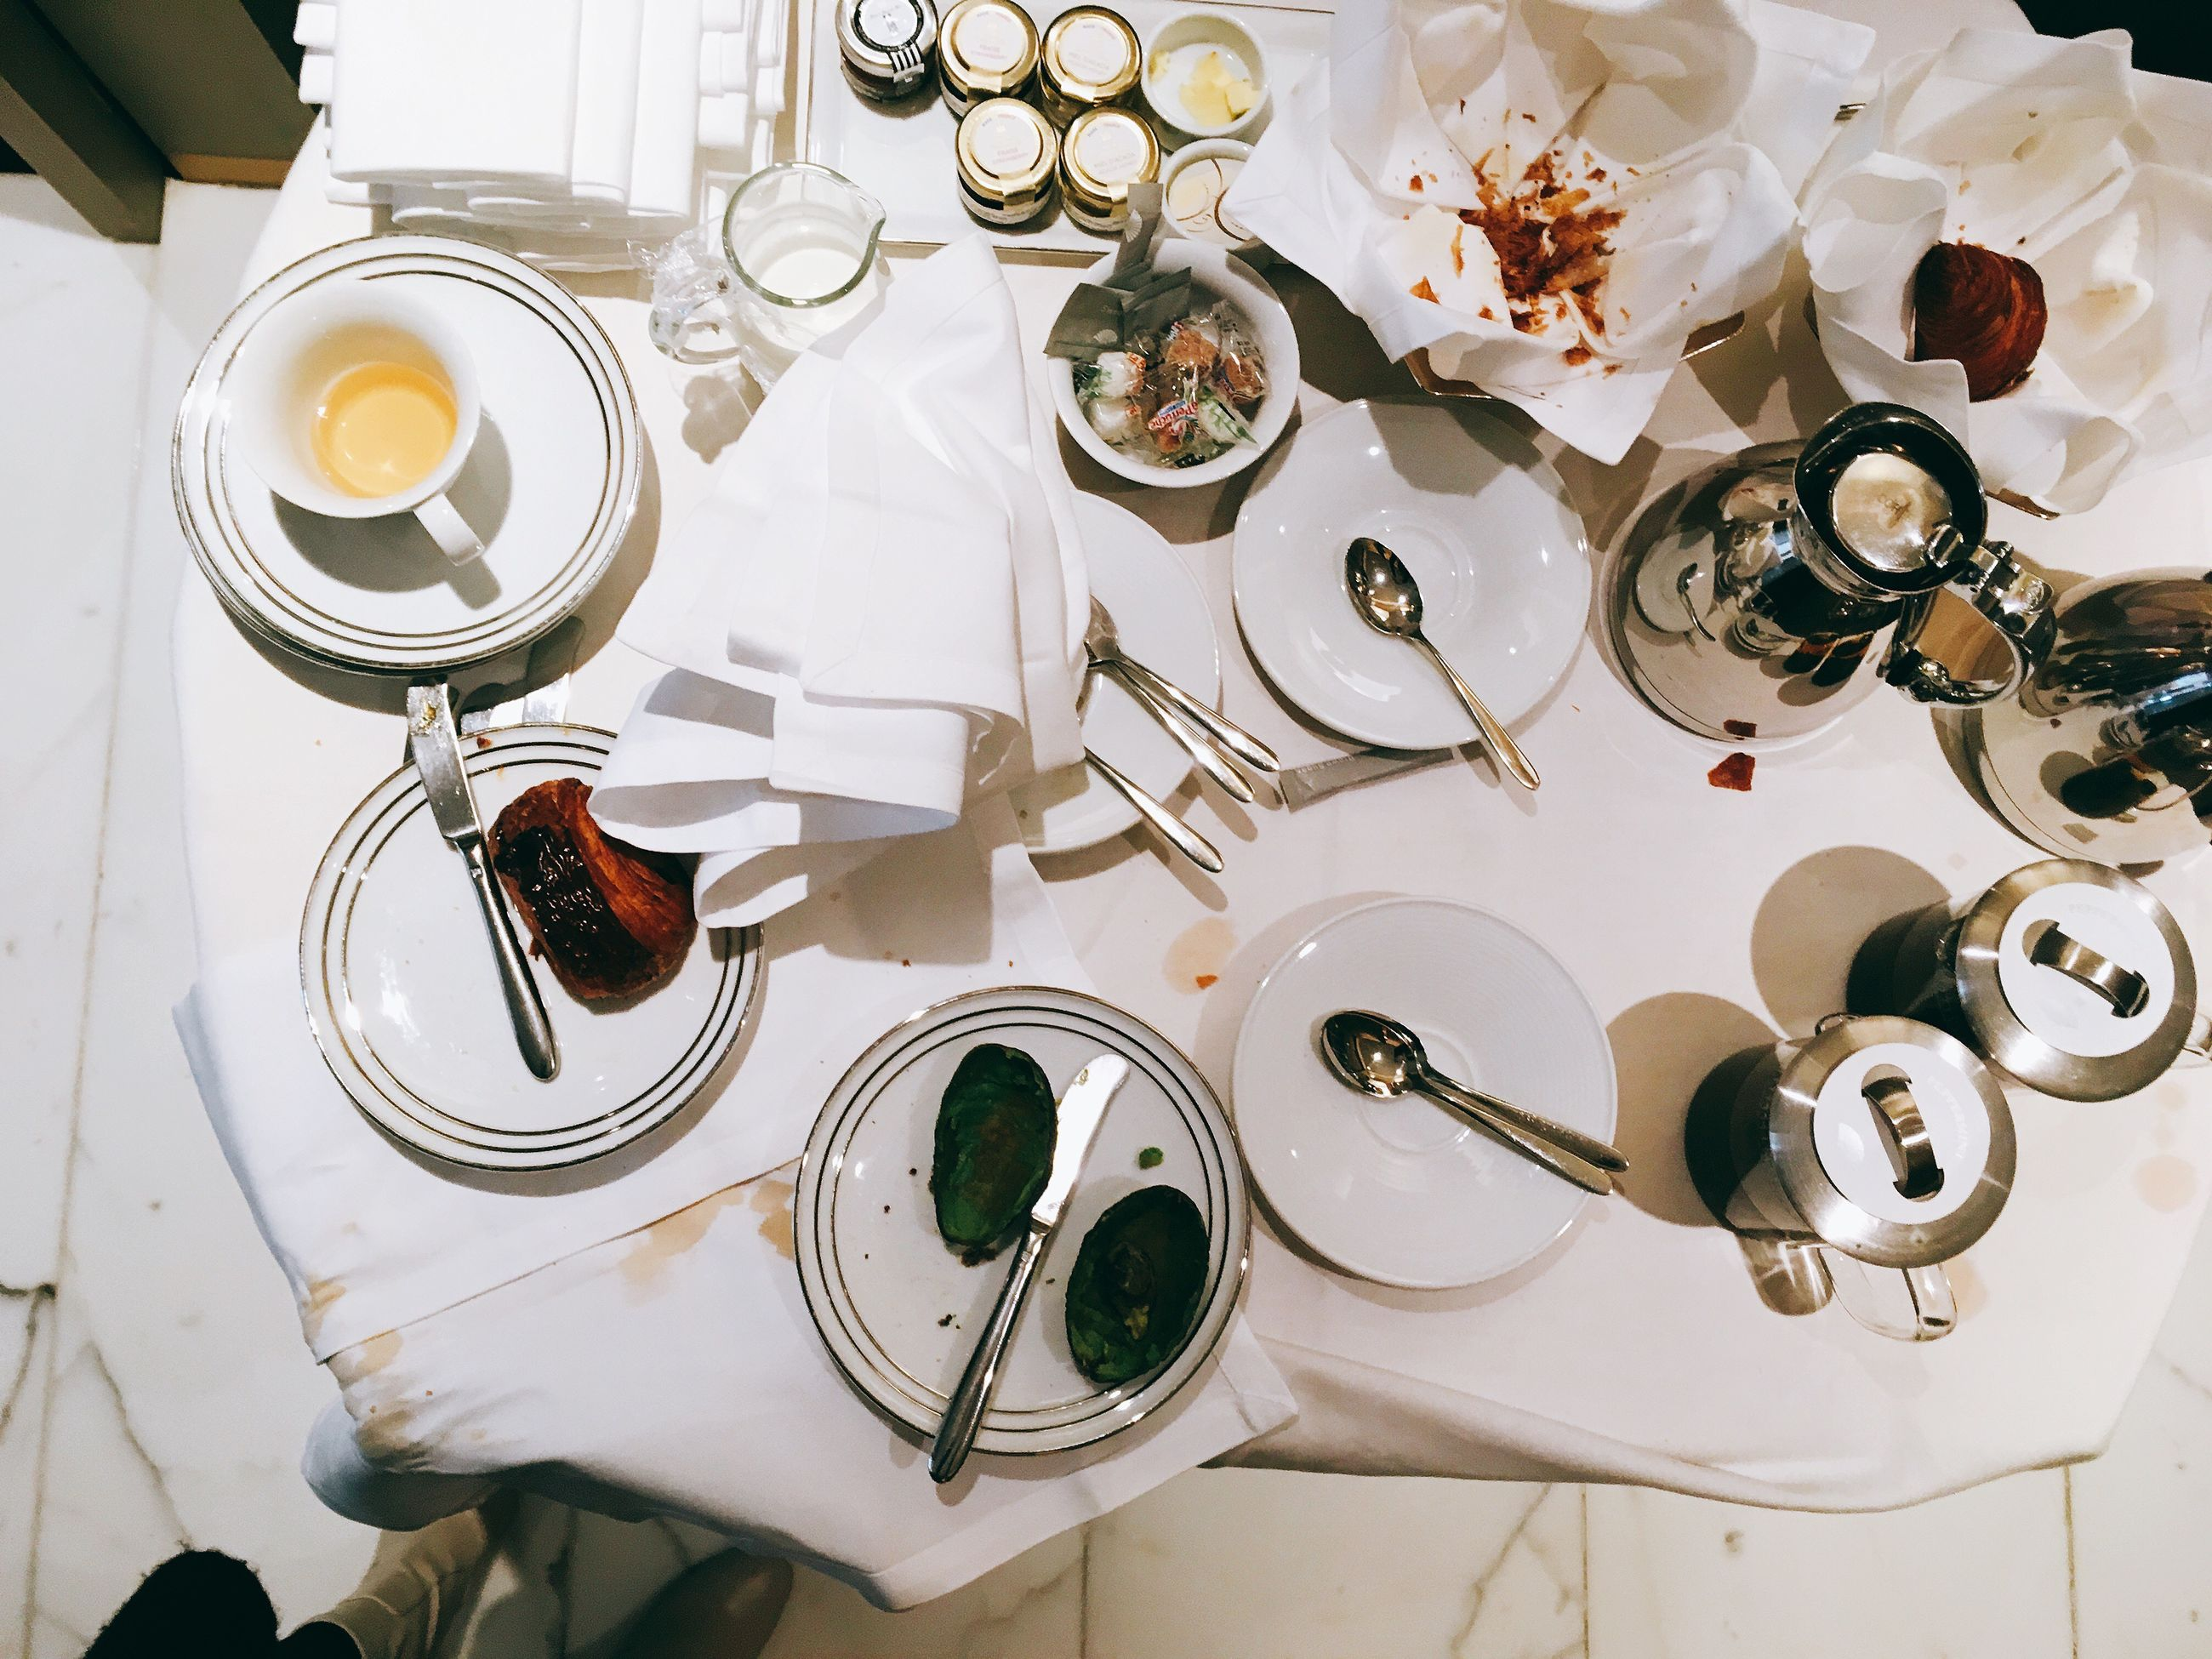 table, high angle view, plate, still life, indoors, place setting, large group of objects, no people, drinking glass, food and drink, fork, wineglass, food, dining table, celebration, setting the table, tablecloth, freshness, day